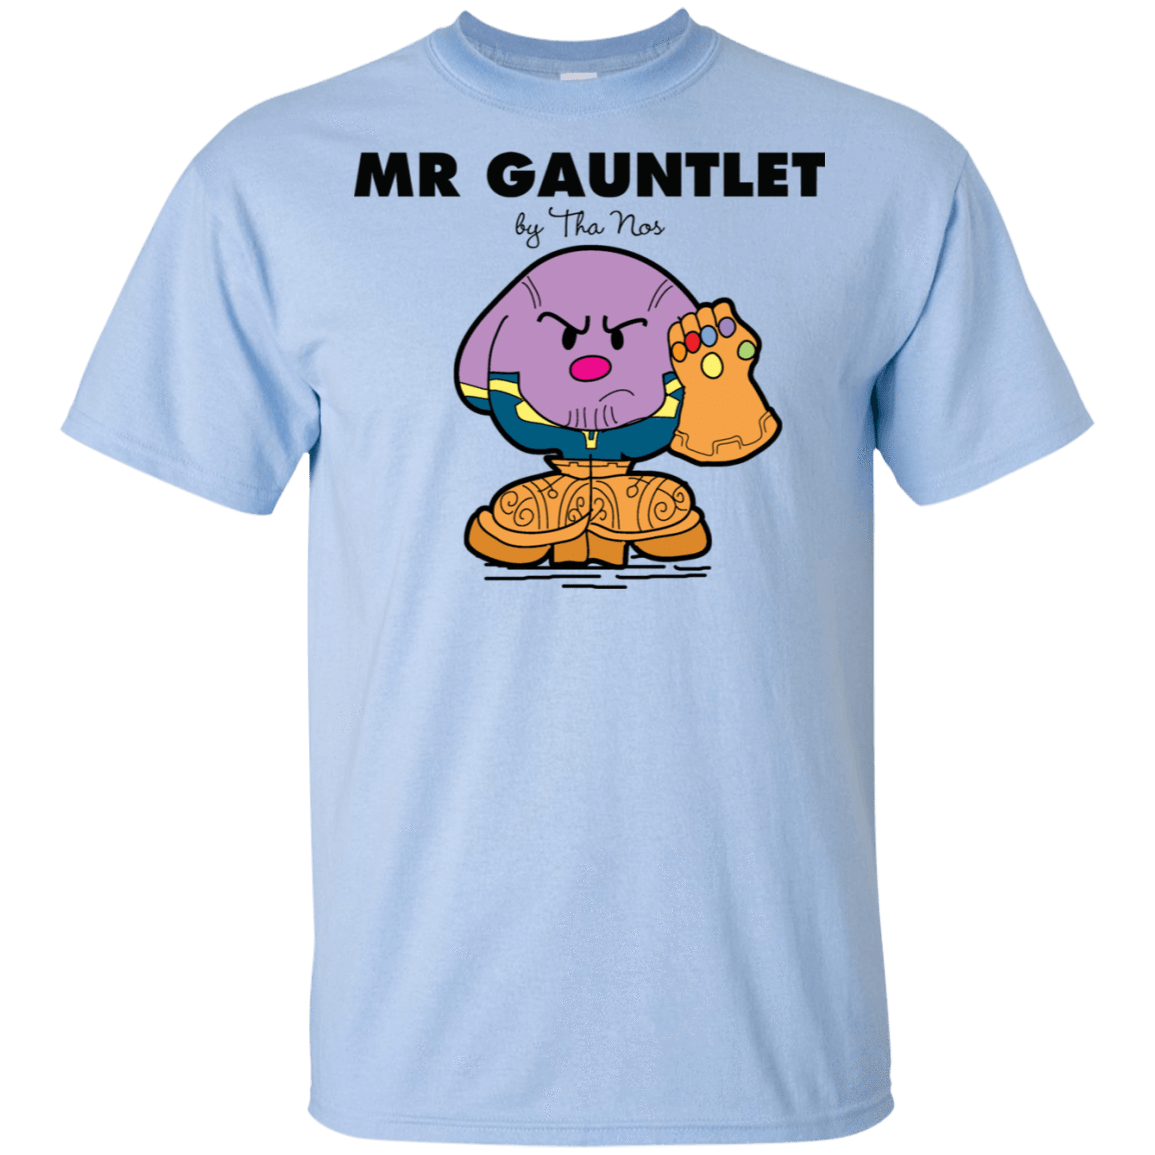 Mr Gauntlet T-Shirt